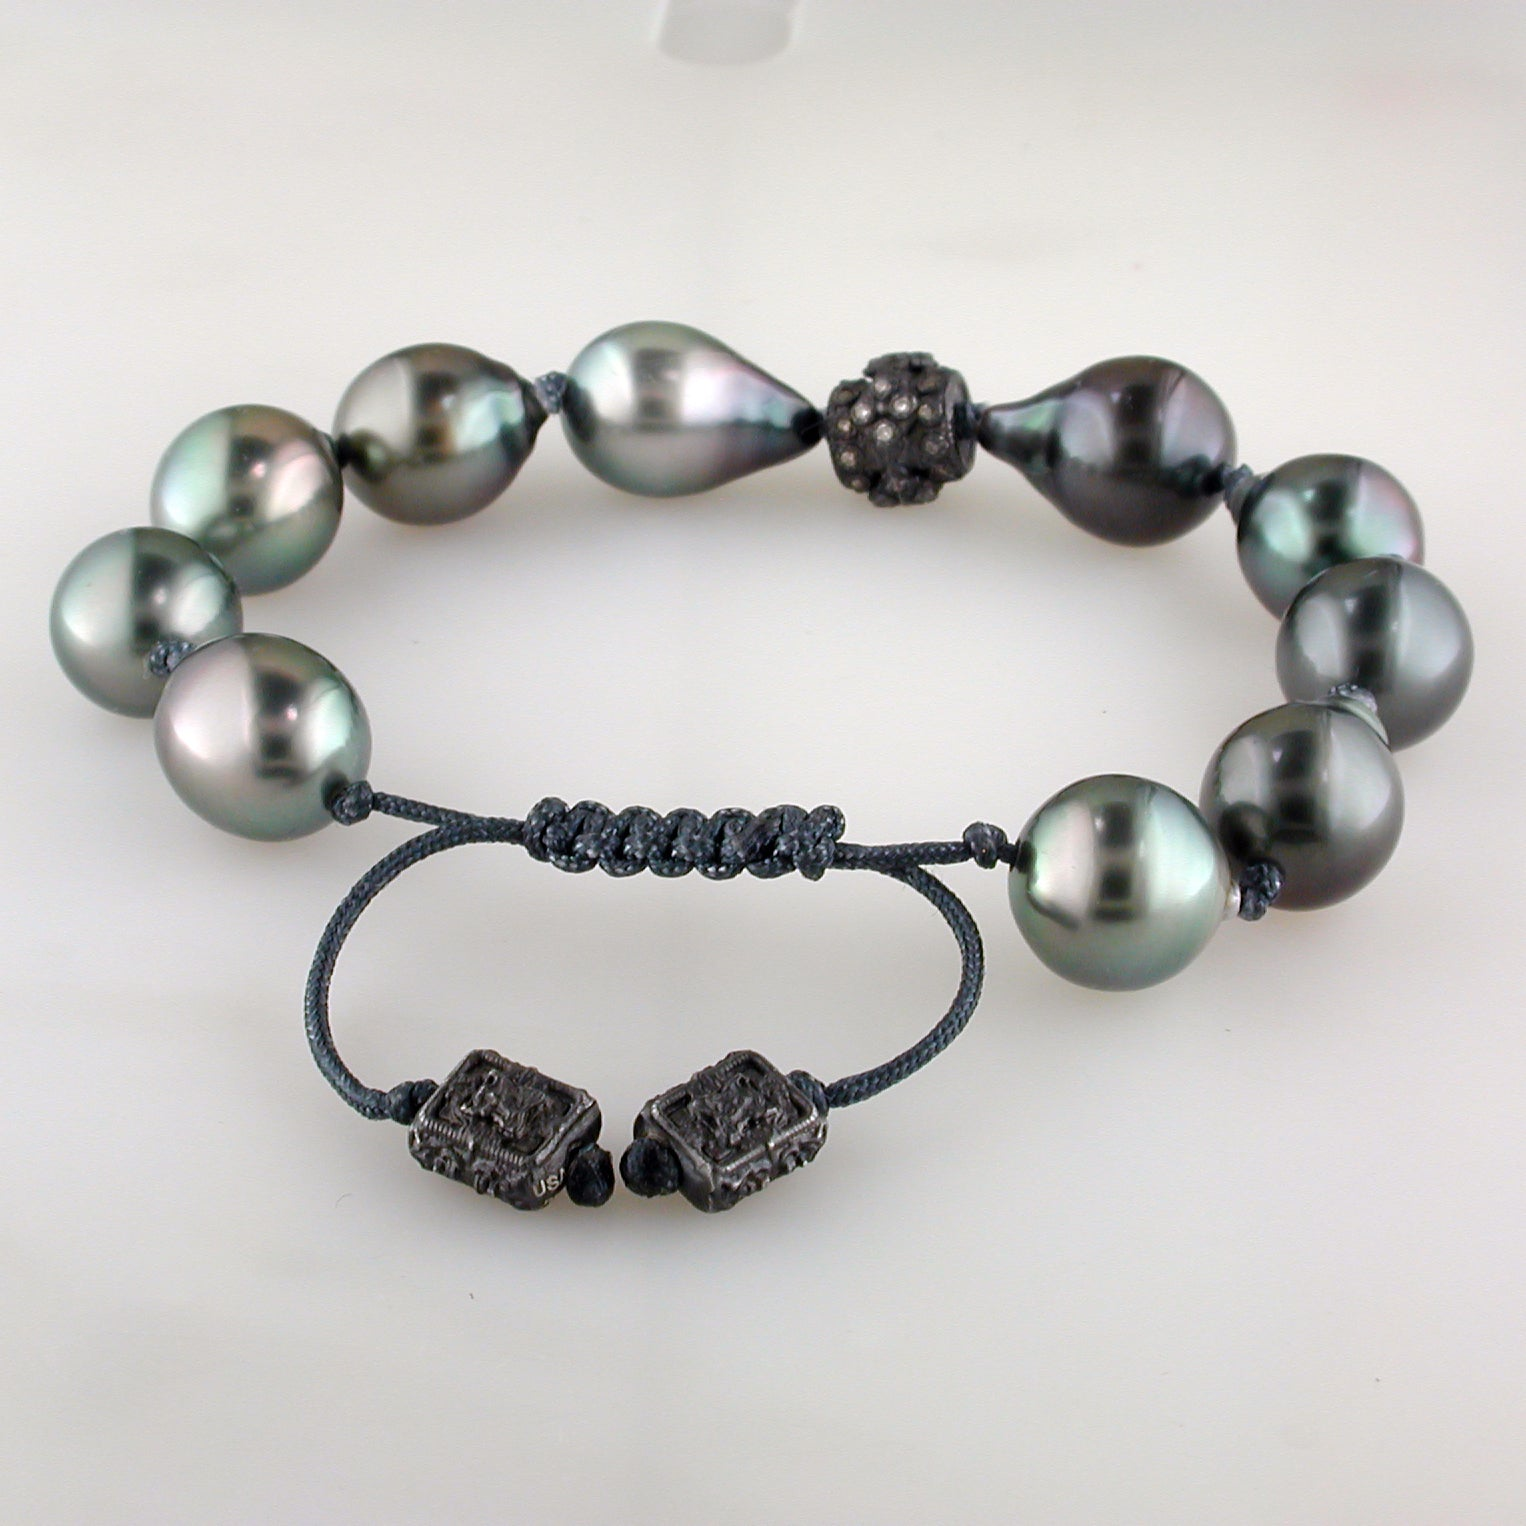 Armenta Midnight Old World South Sea Pearl Beaded Pull Bracelet Champagne Diamond Silver 10366